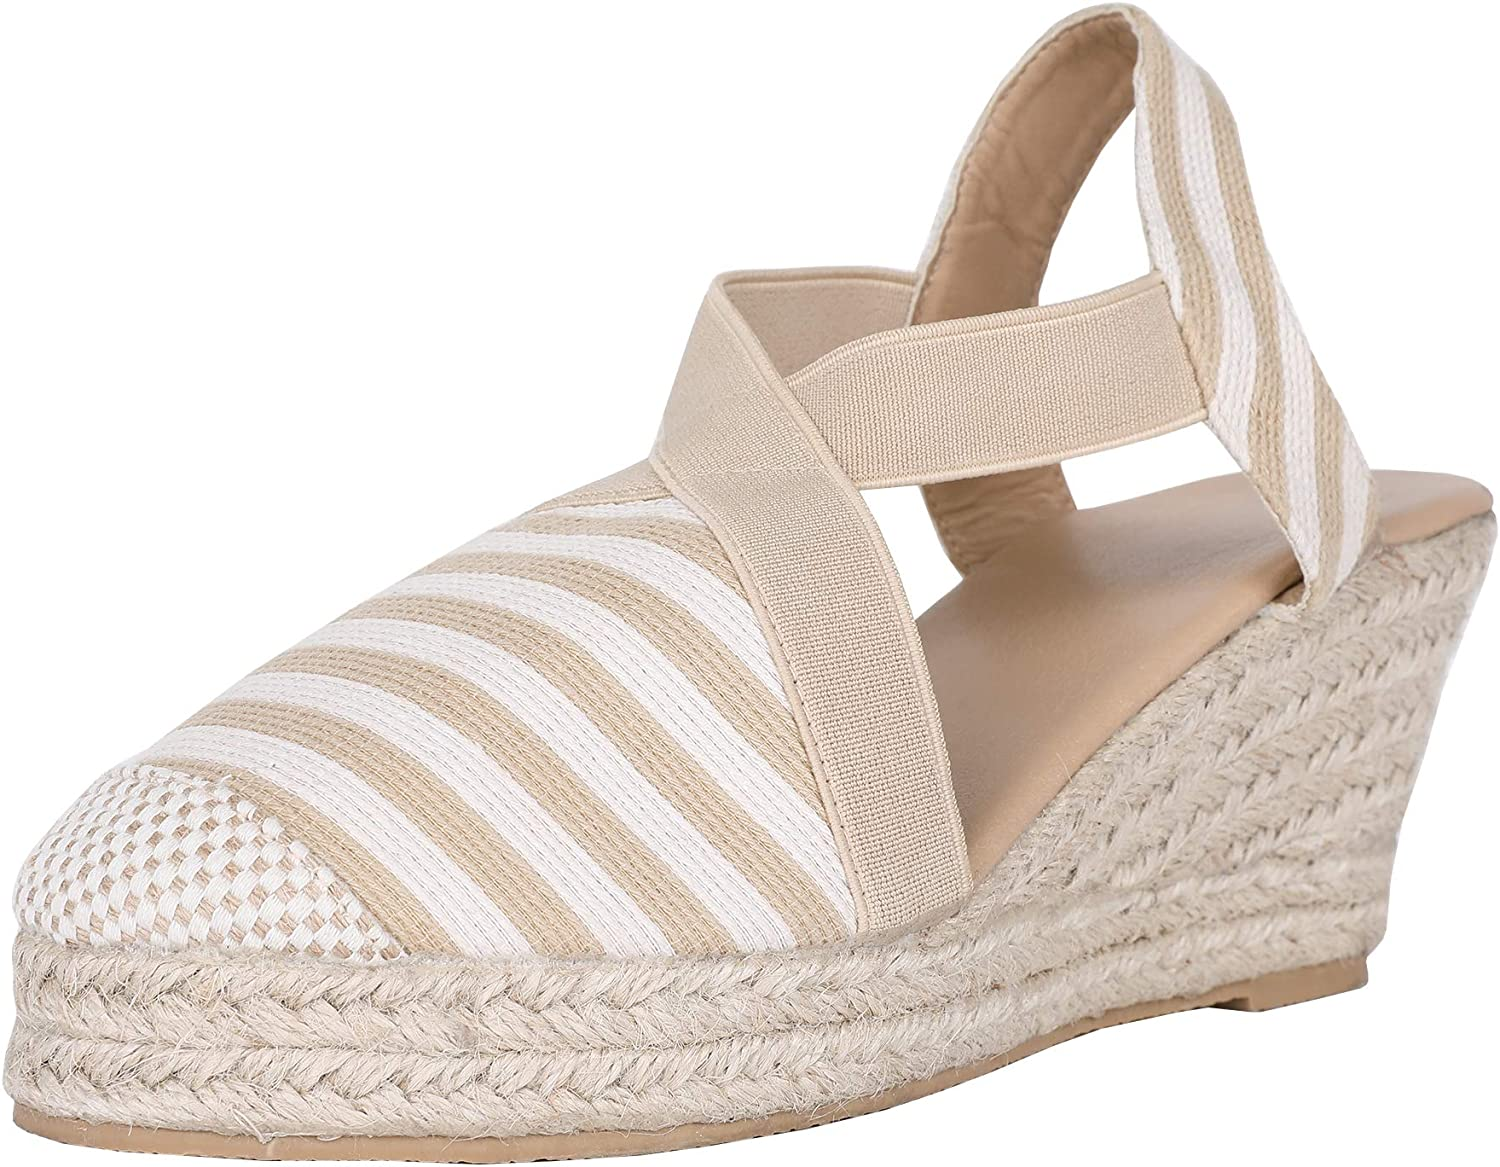 FISACE Womens Summer Espadrille Heel Wedges Ankle Buckle Strap Closed Toe Sandals shoes